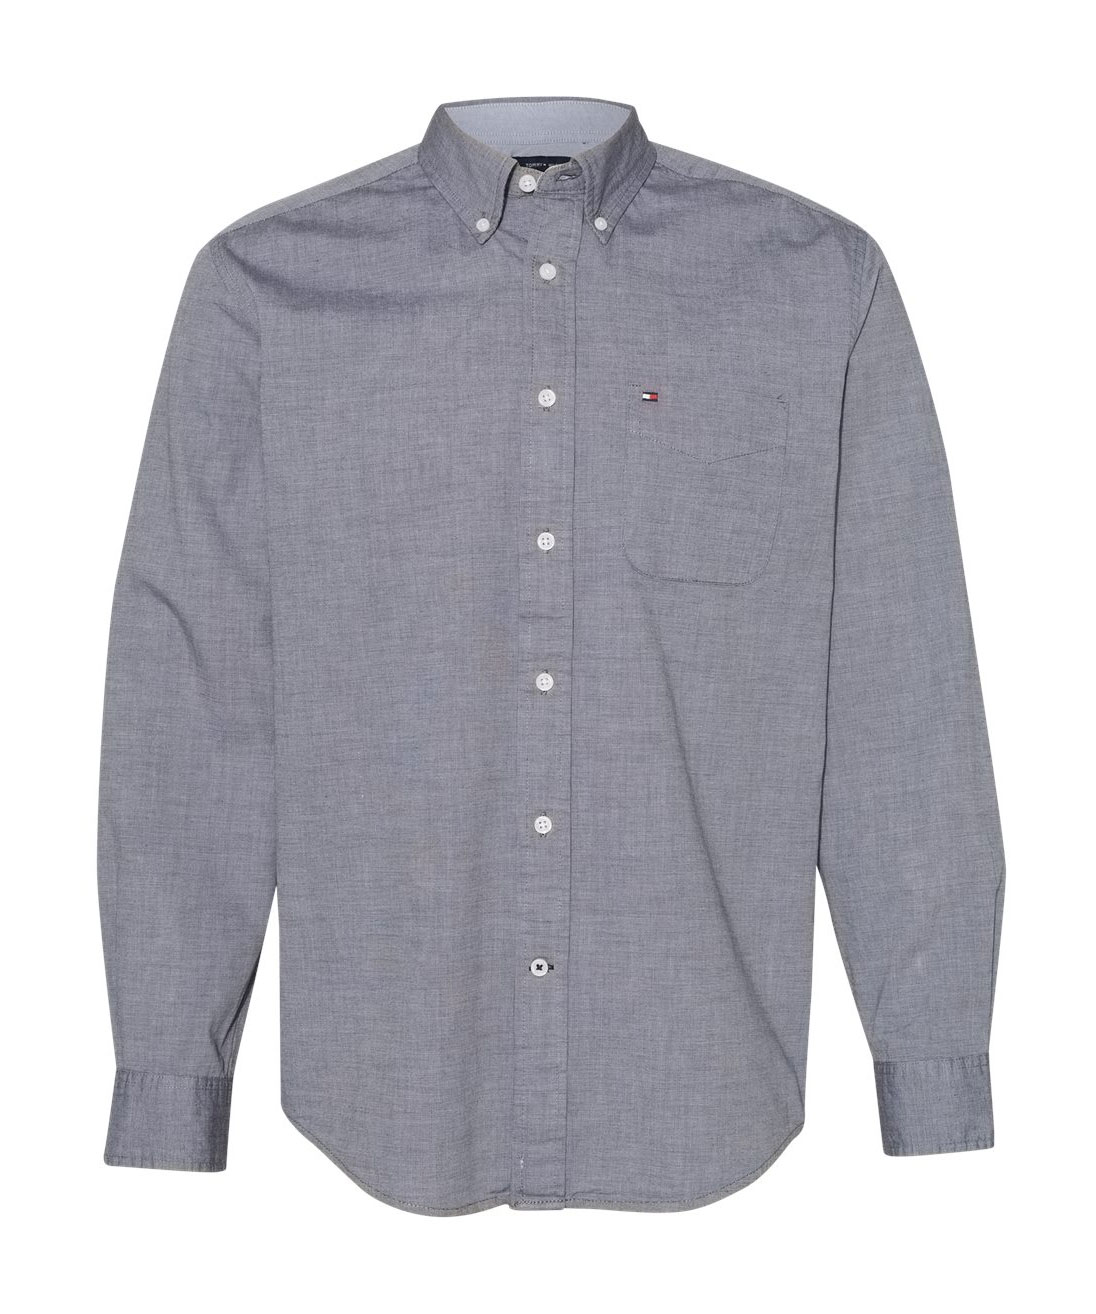 Tommy Hilfiger - Adult Capote End-on-End Chambray Shirt